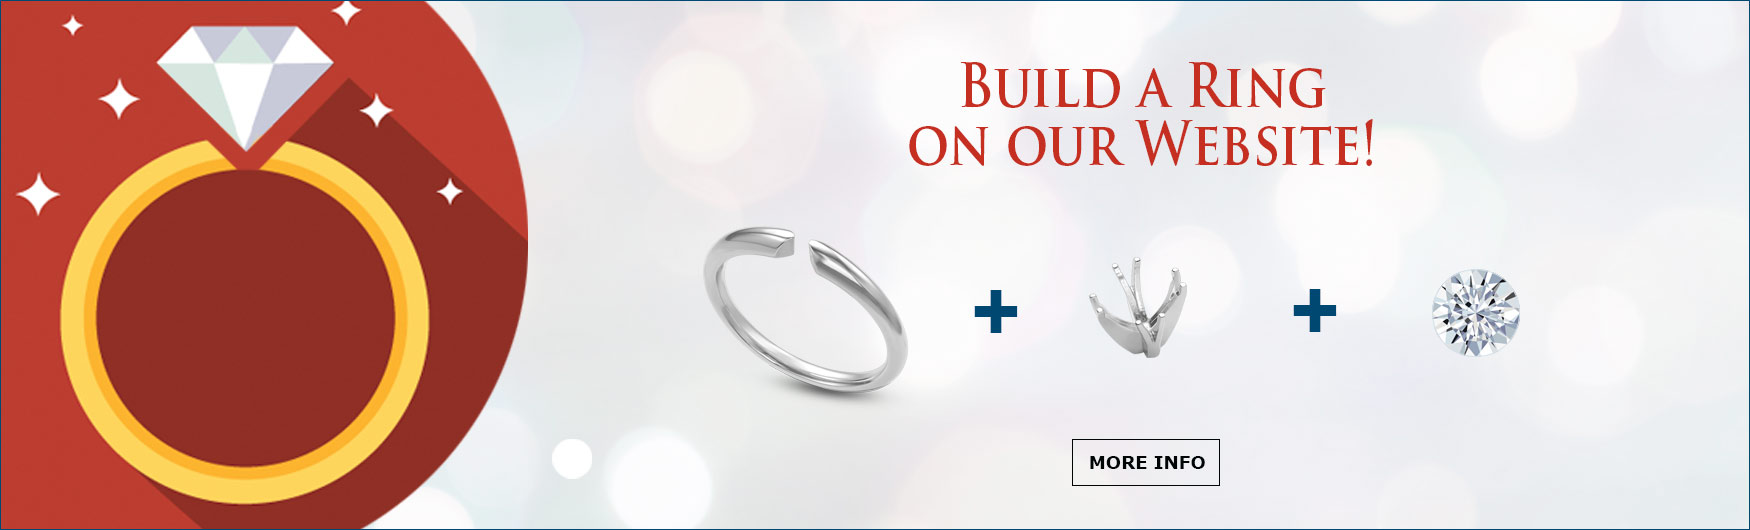 Build A Ring